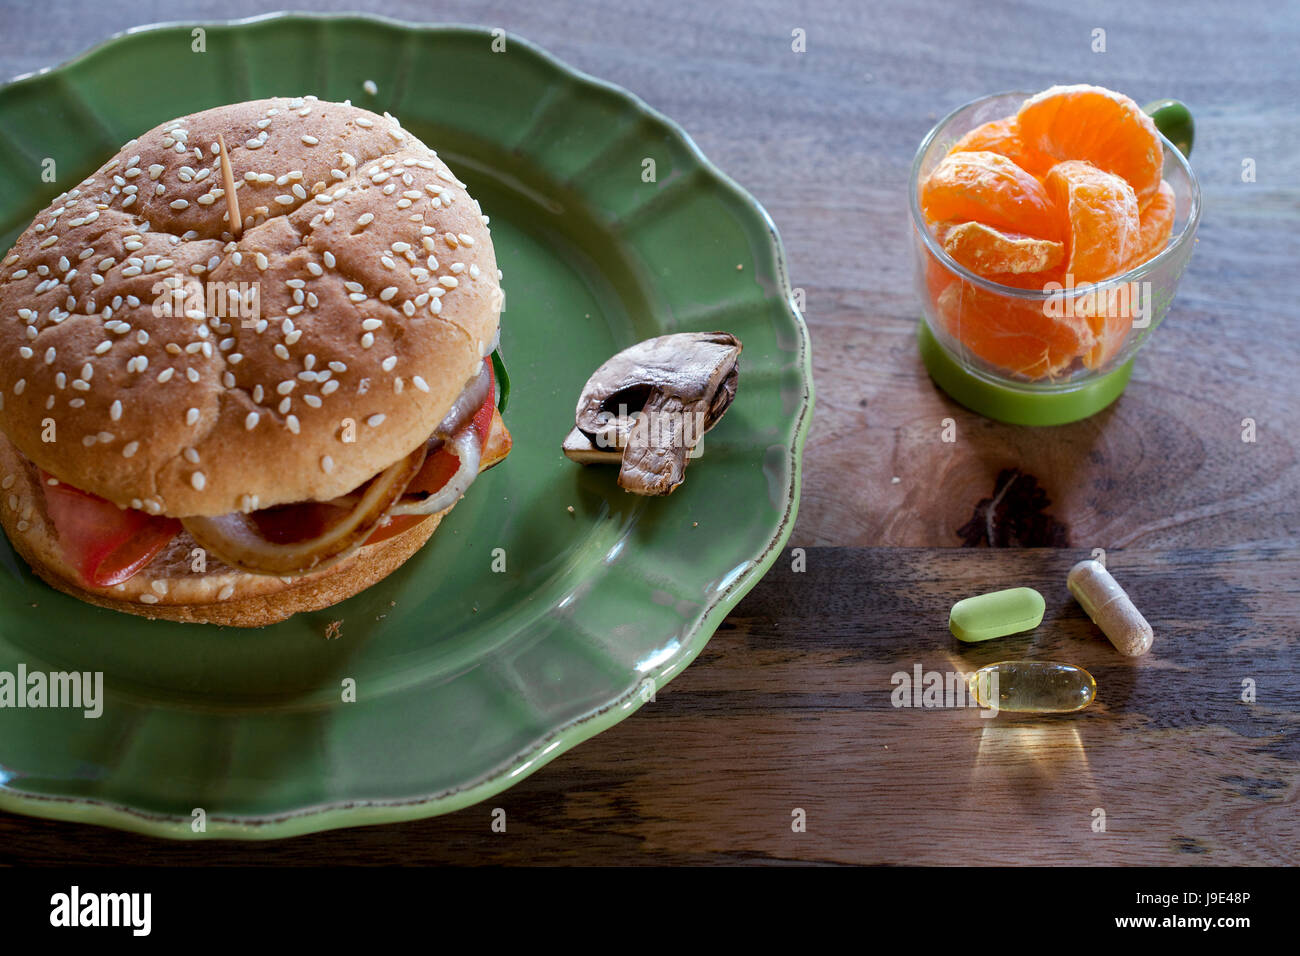 Vegan hamburger on green plate, viewed from above, served with mushroom and tangerine slices, on wooden table, and - Stock Image